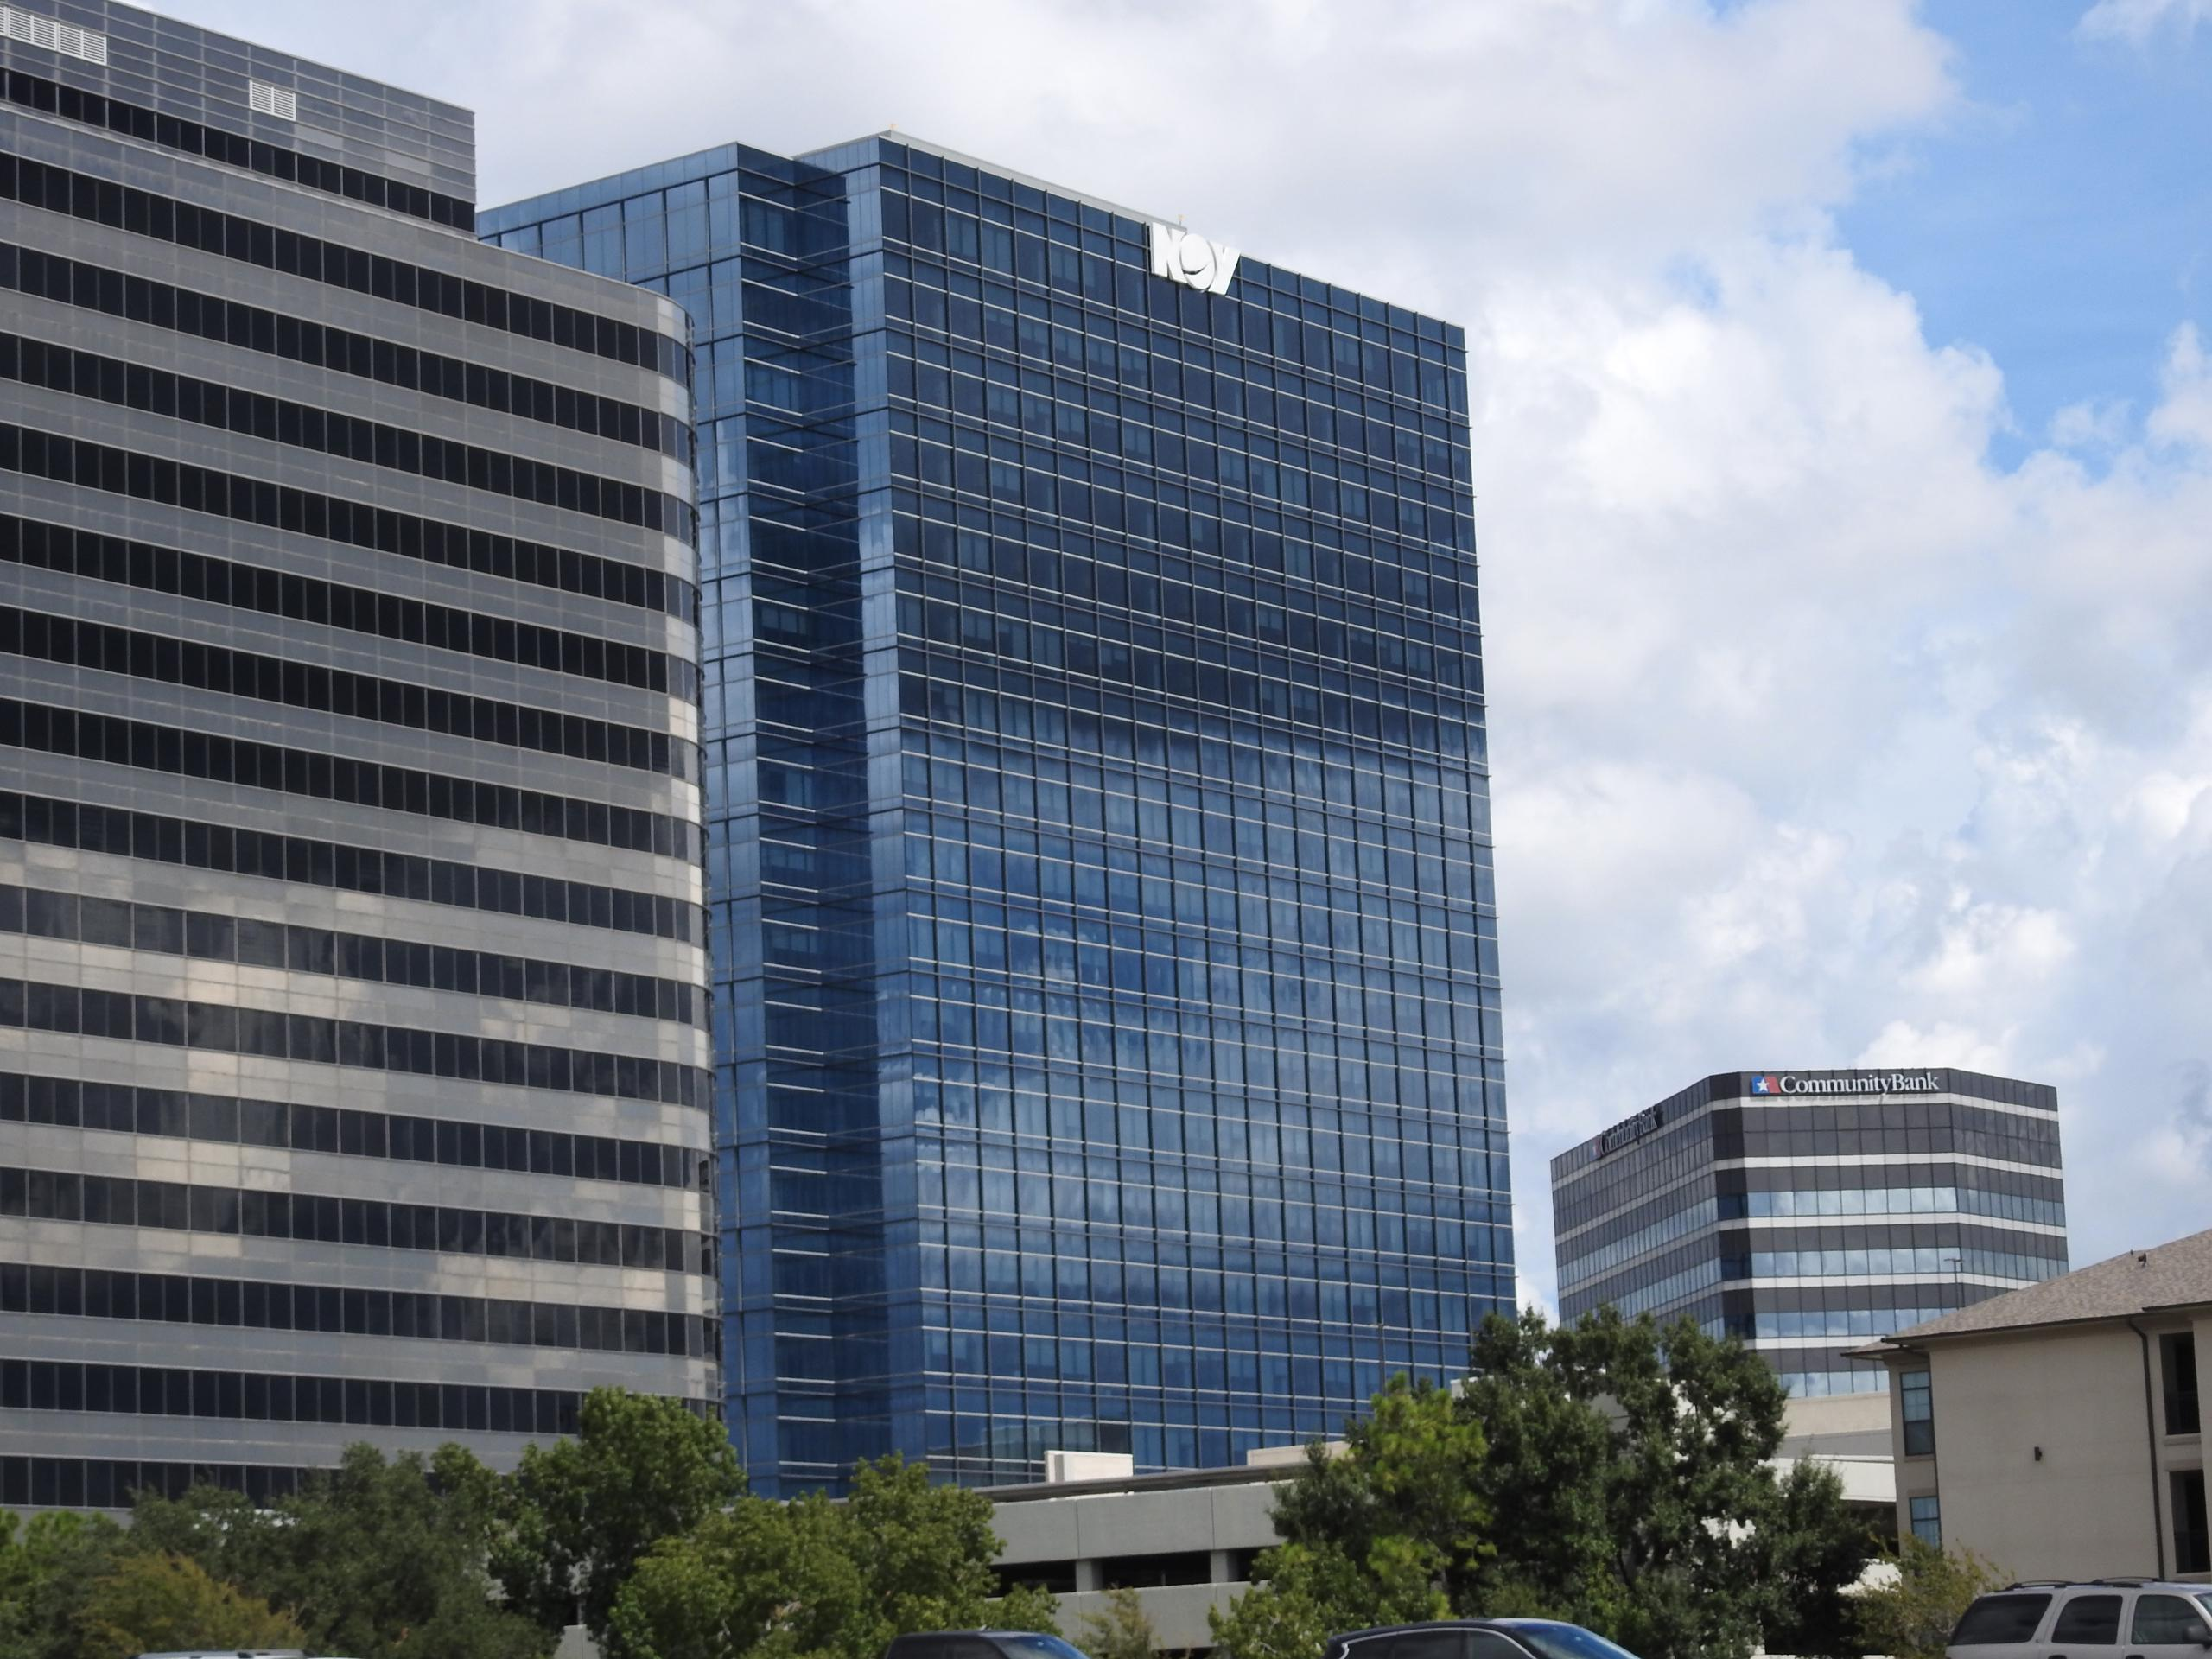 National Oilwell Varco office in Houston, Texas.